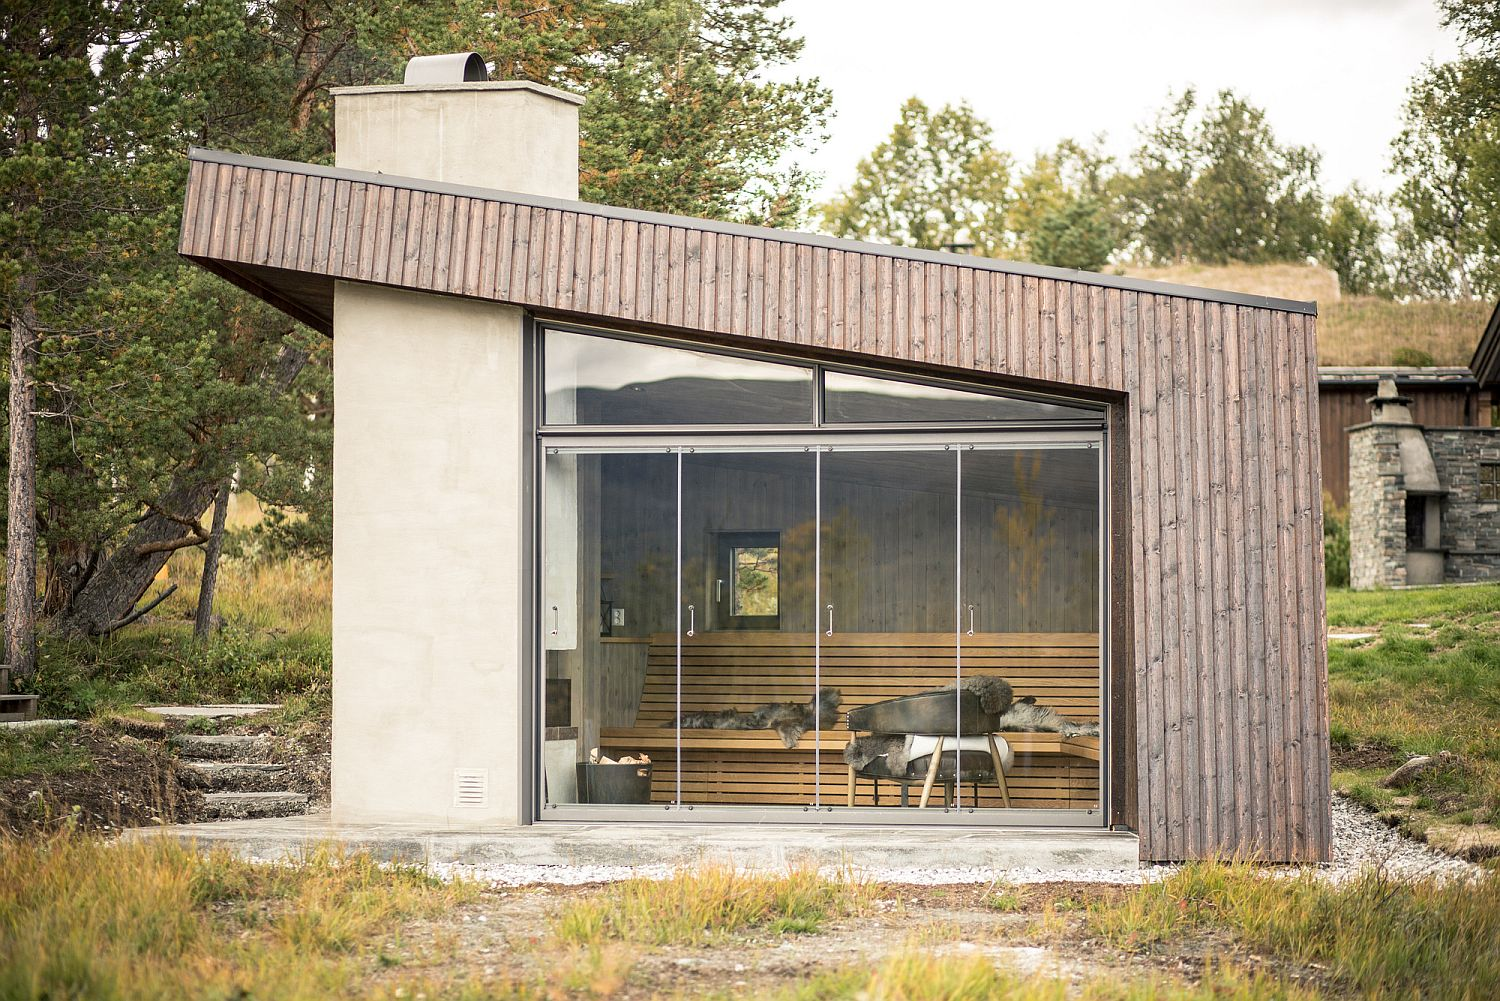 Sliding glass doors for the cabin in Norway